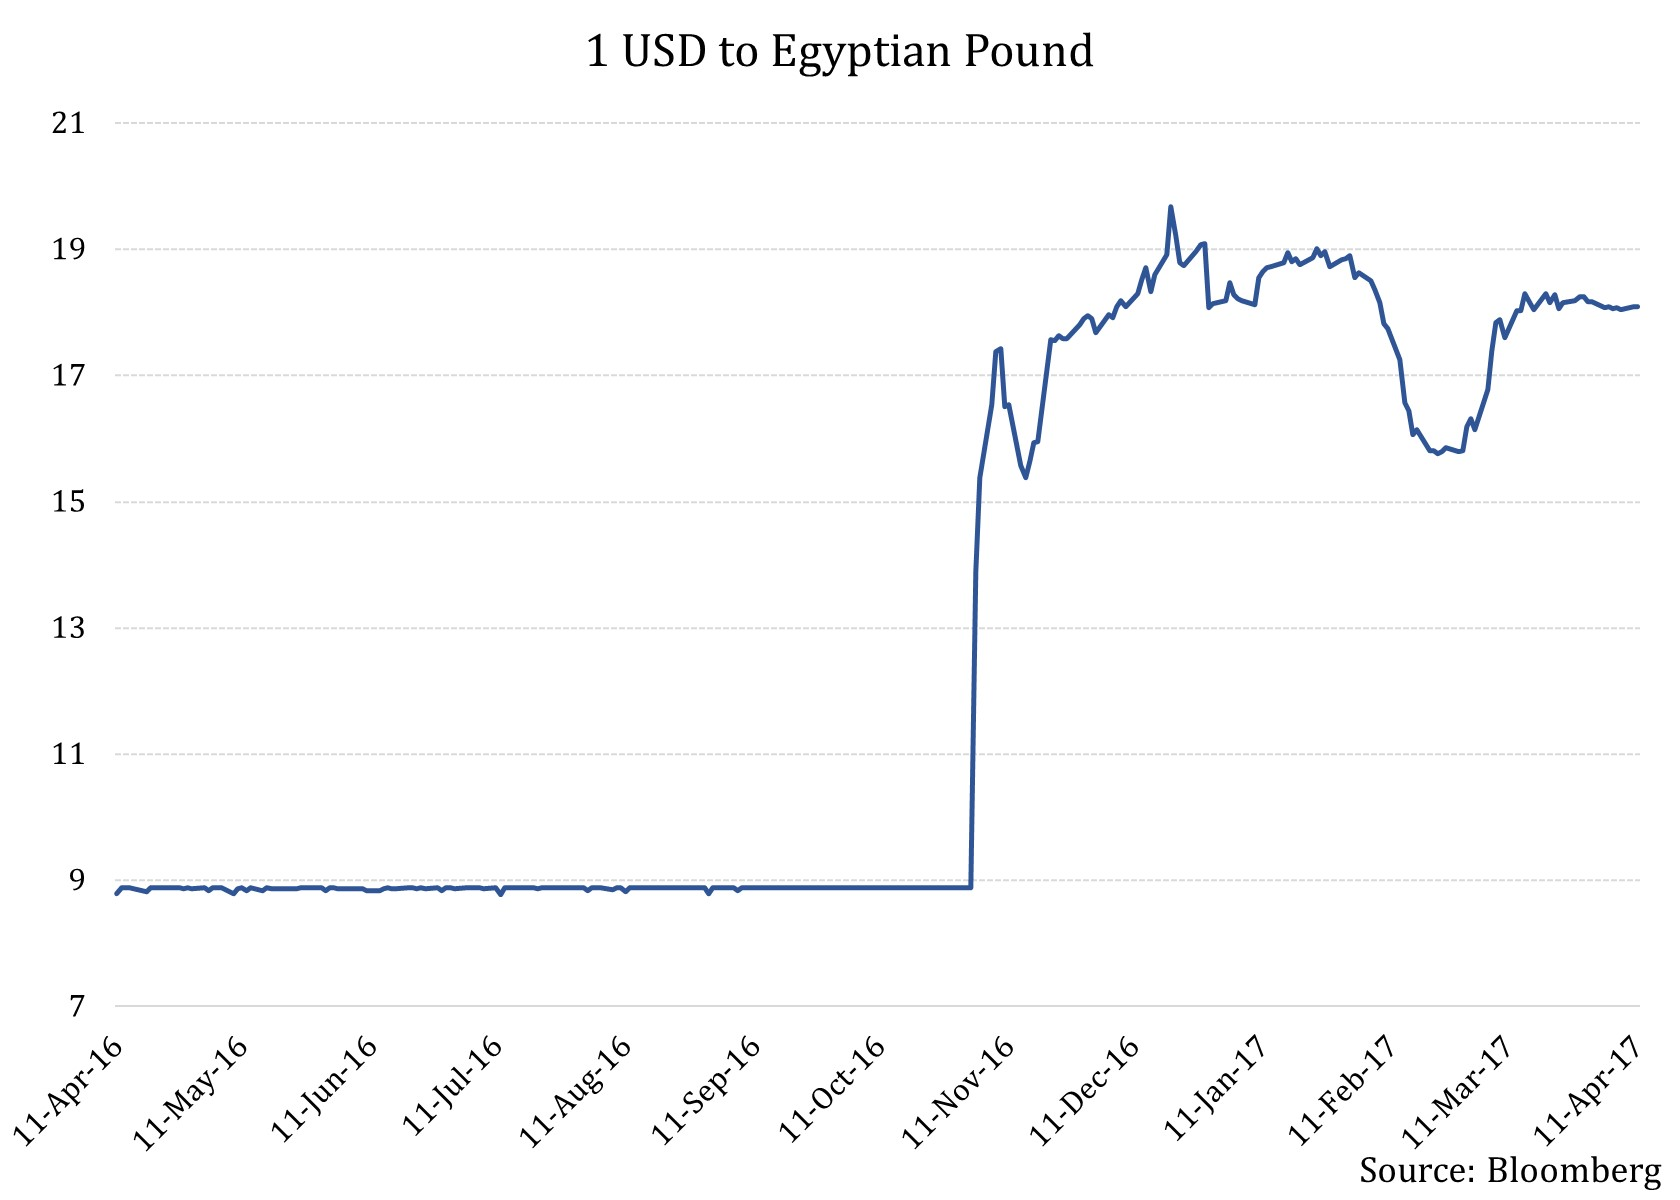 Major Concerns Surrounding Egypt's National Economic ...